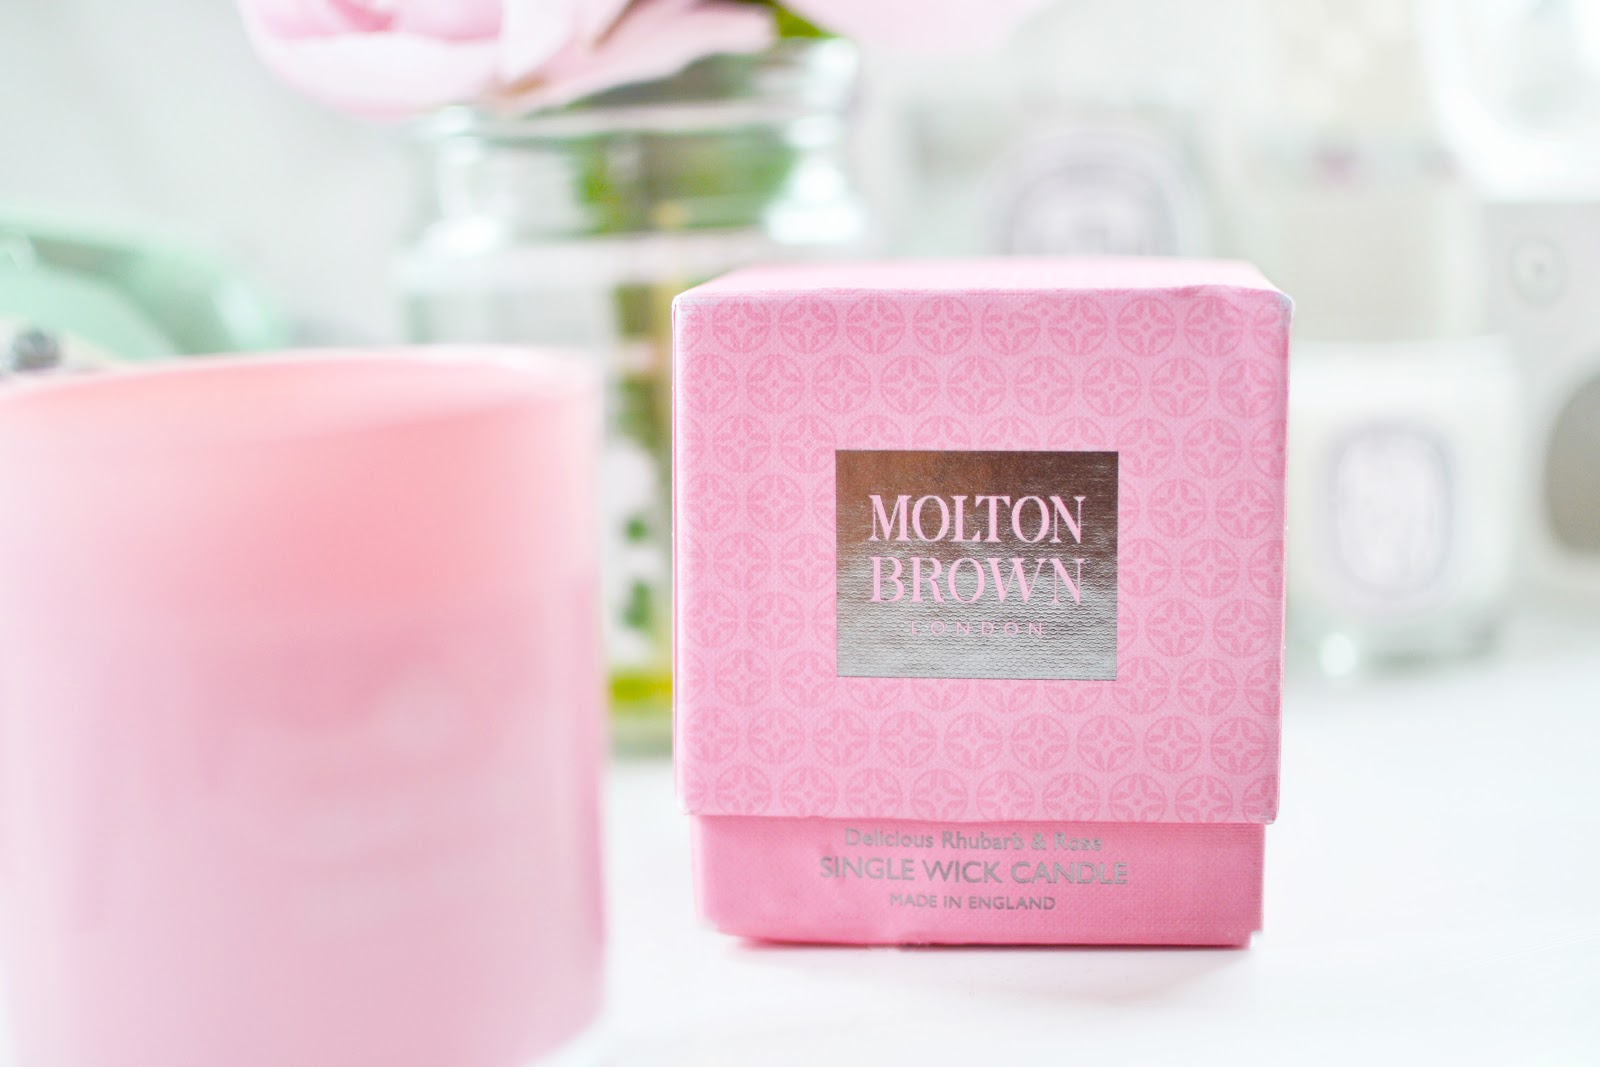 Molton Brown Rhubarb and Rose Candle